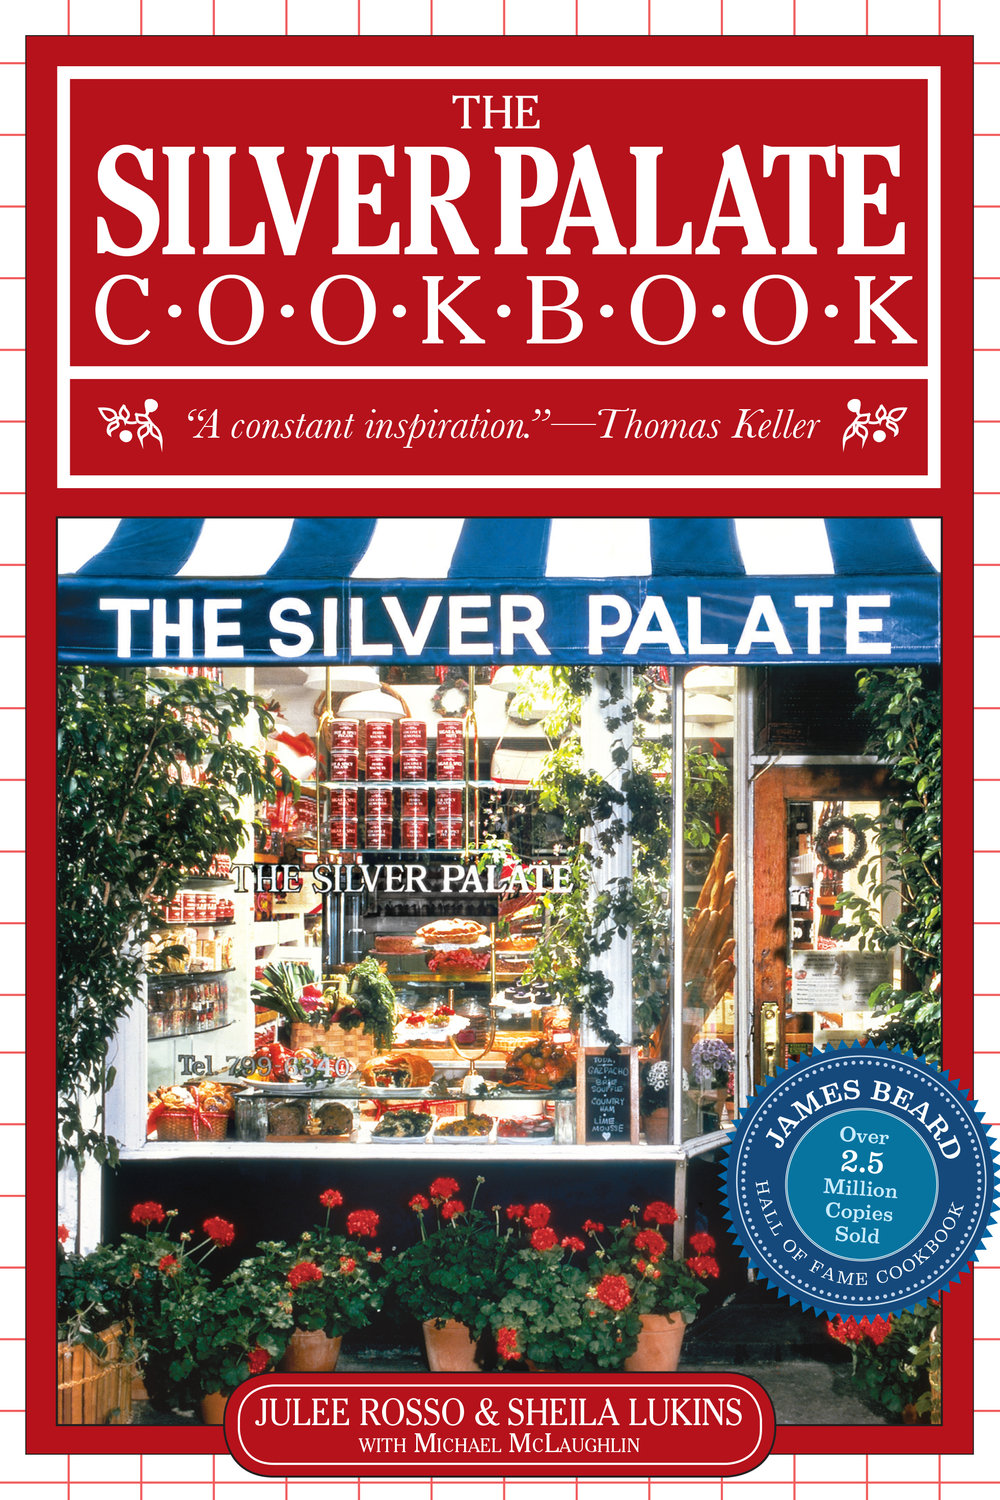 Workman - The Silver Palate Cookbook - 9780761179580-crop.jpg